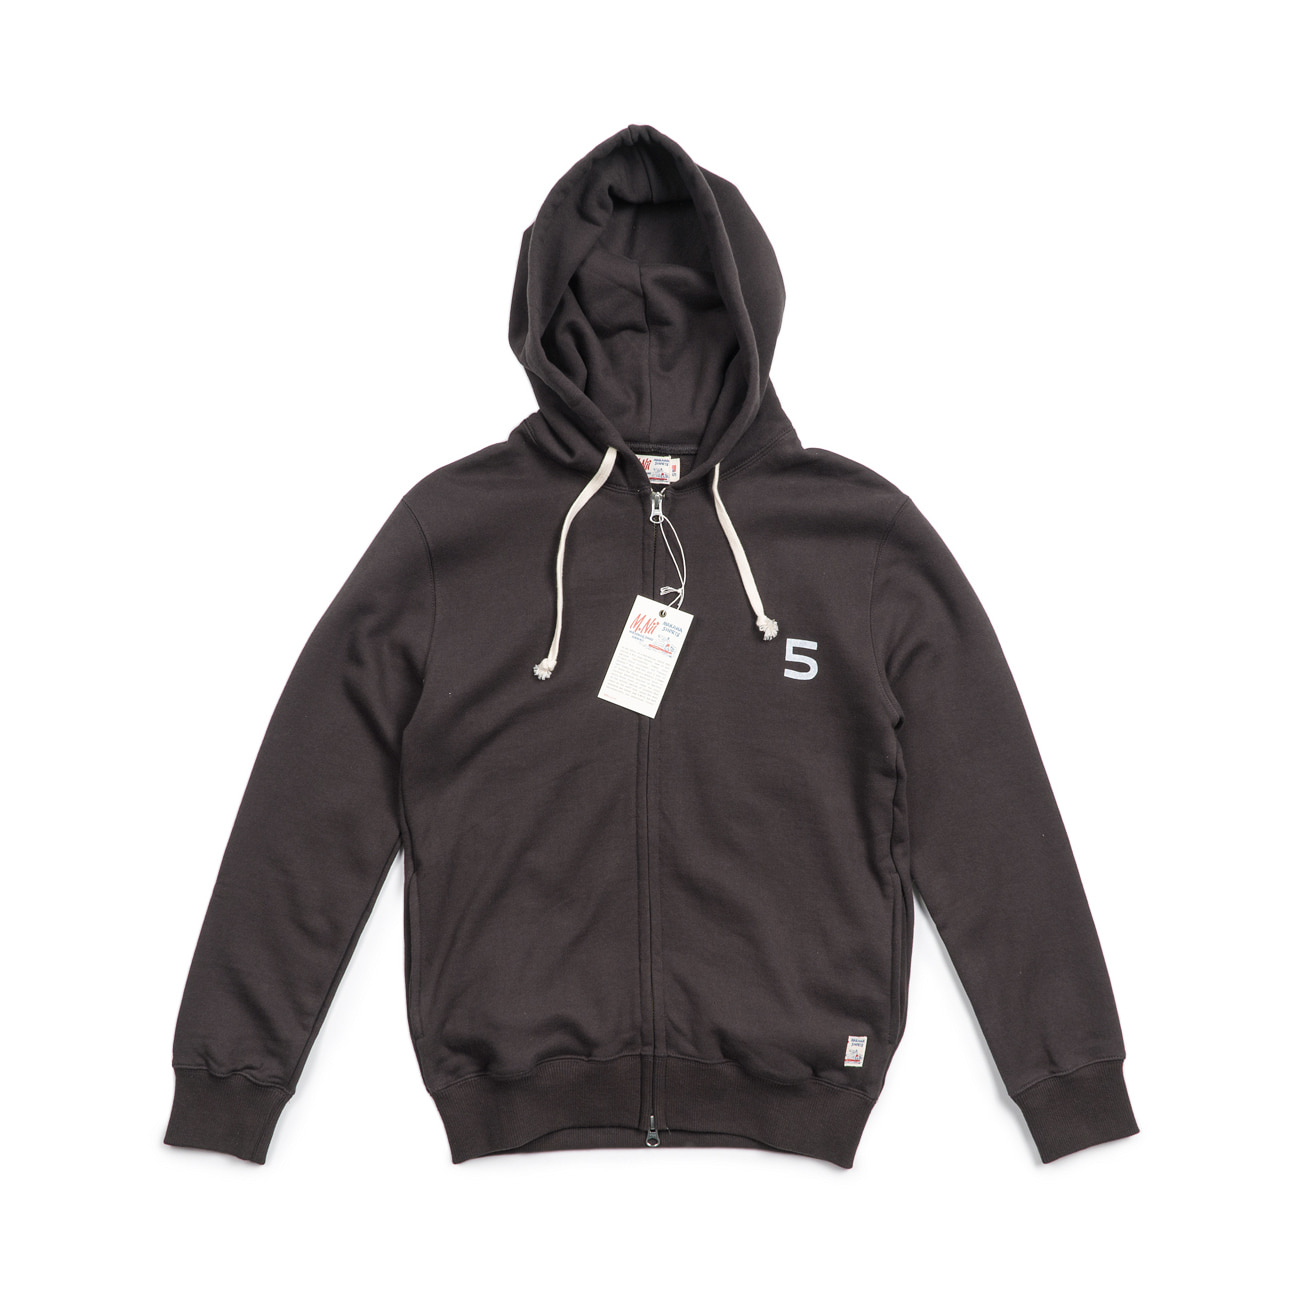 HiFive 2 Way Zip up Hood